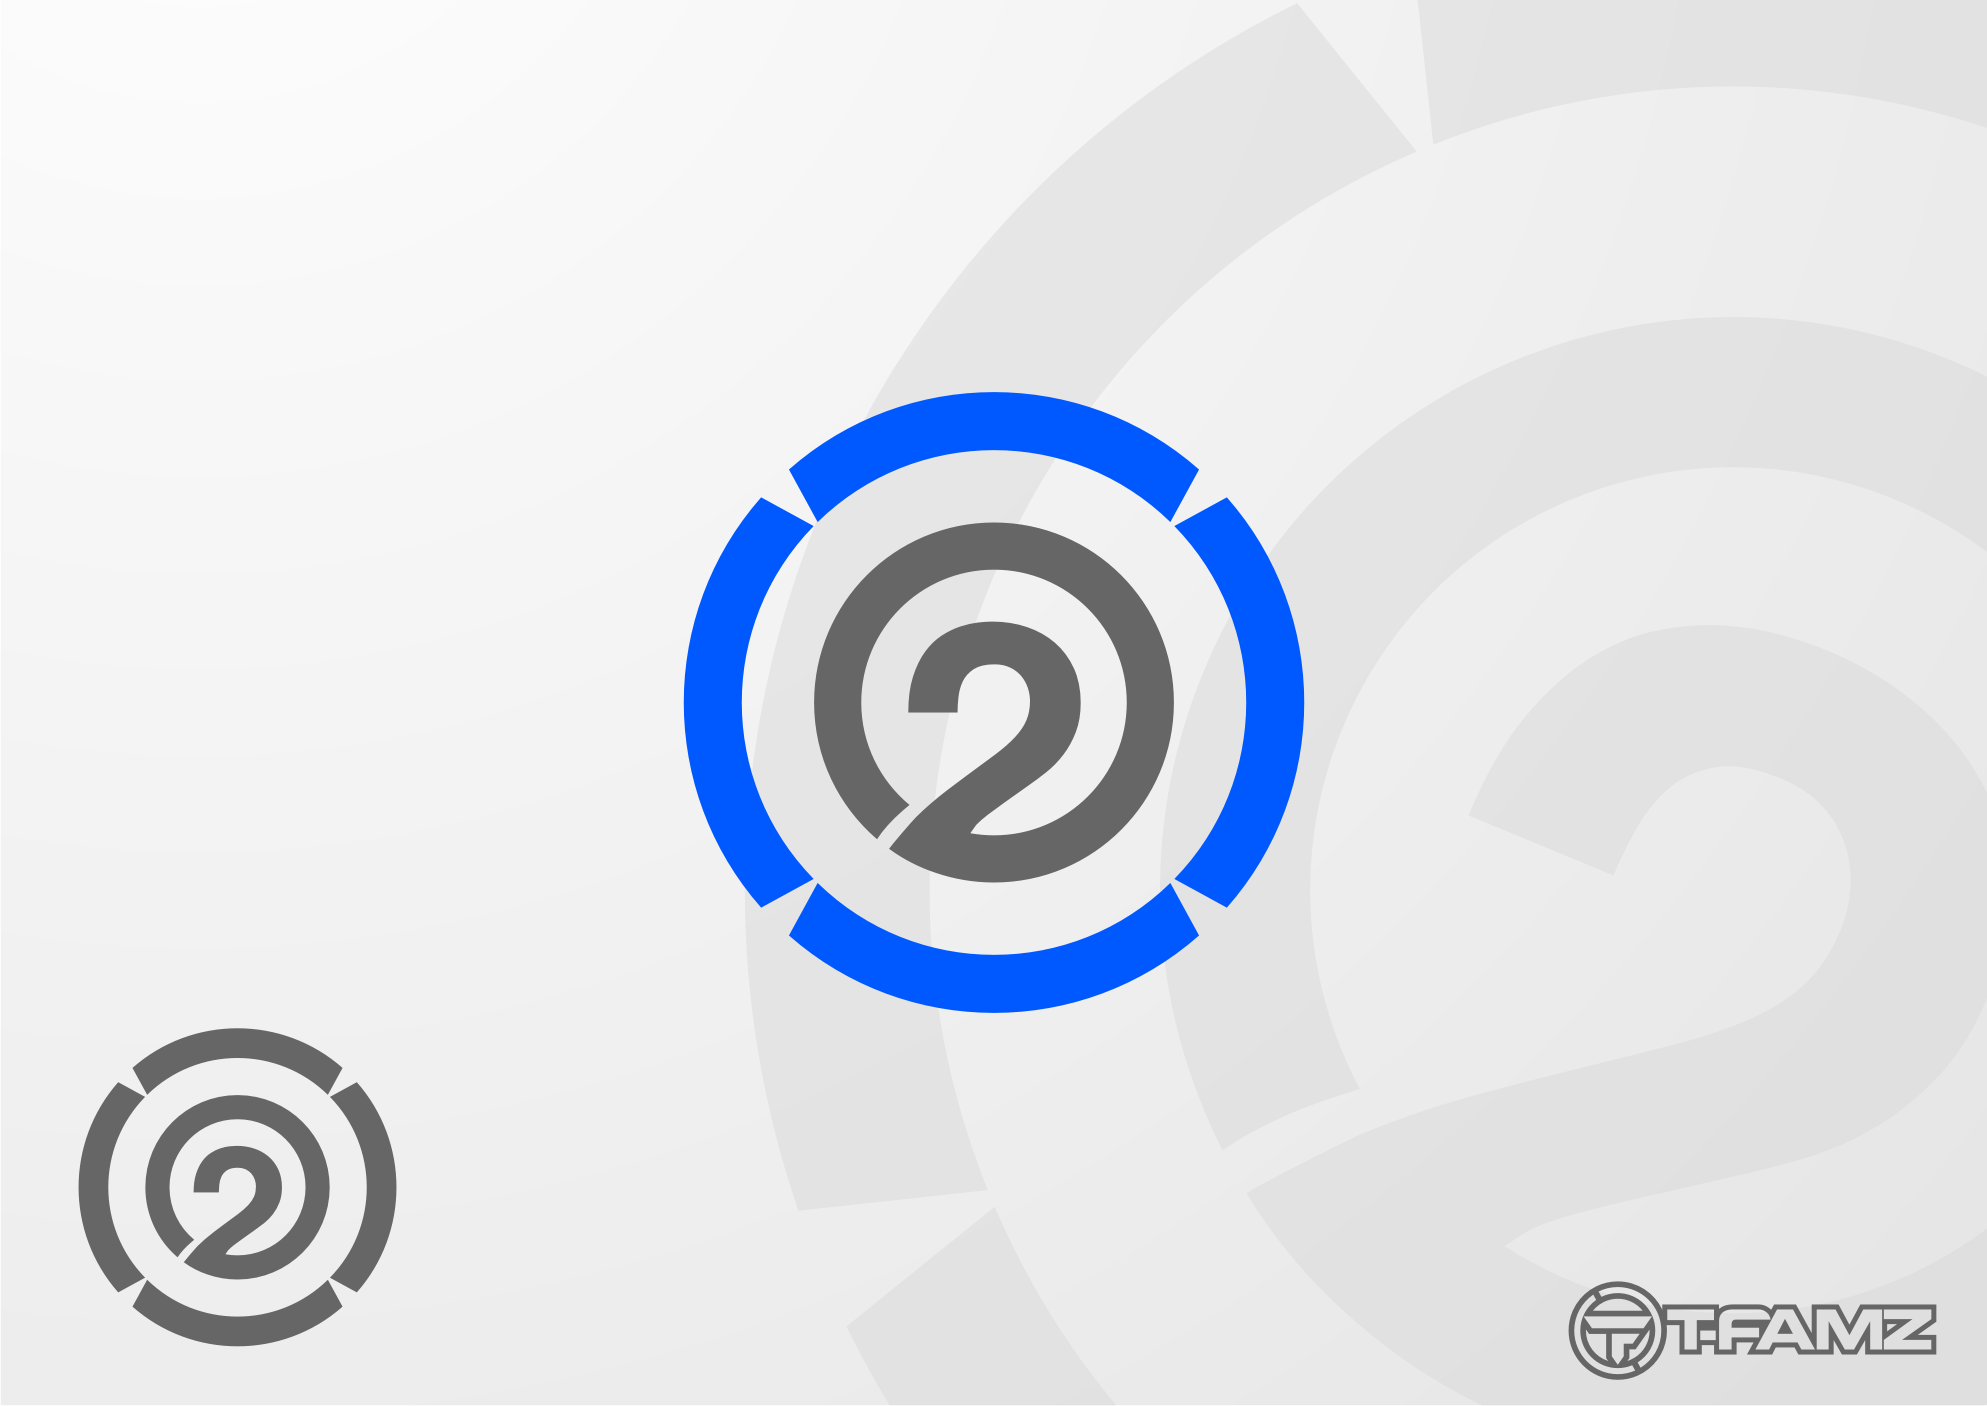 Logo Design by Tille Famz - Entry No. 10 in the Logo Design Contest Artistic Logo Design for O2.